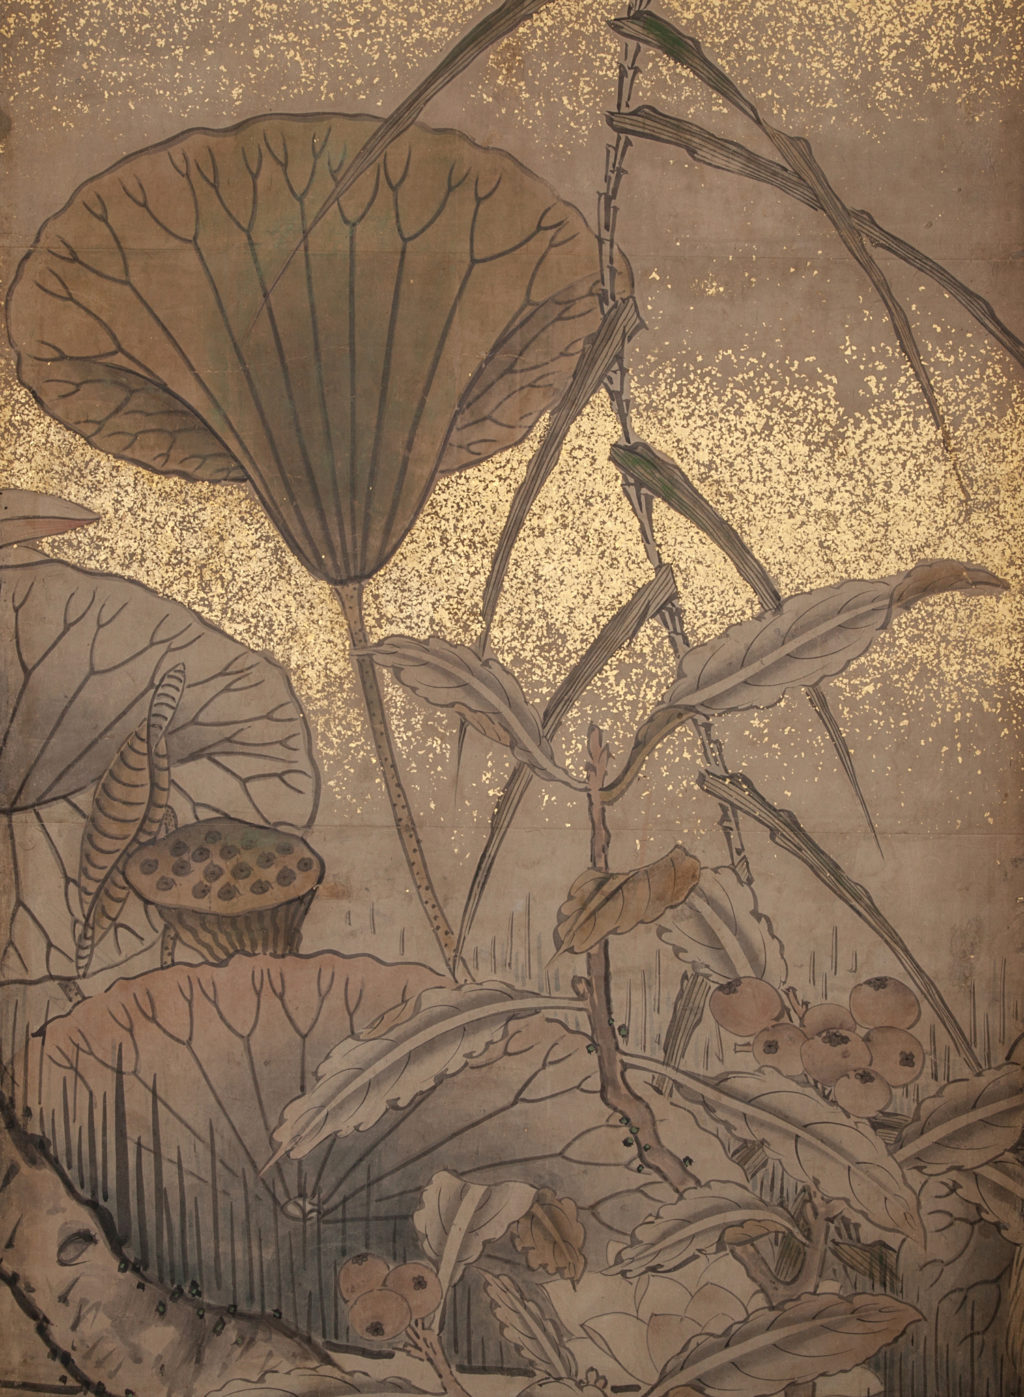 Japanese Six Panel Screen: Egrets in Water Landscape with Lotus and Loquats